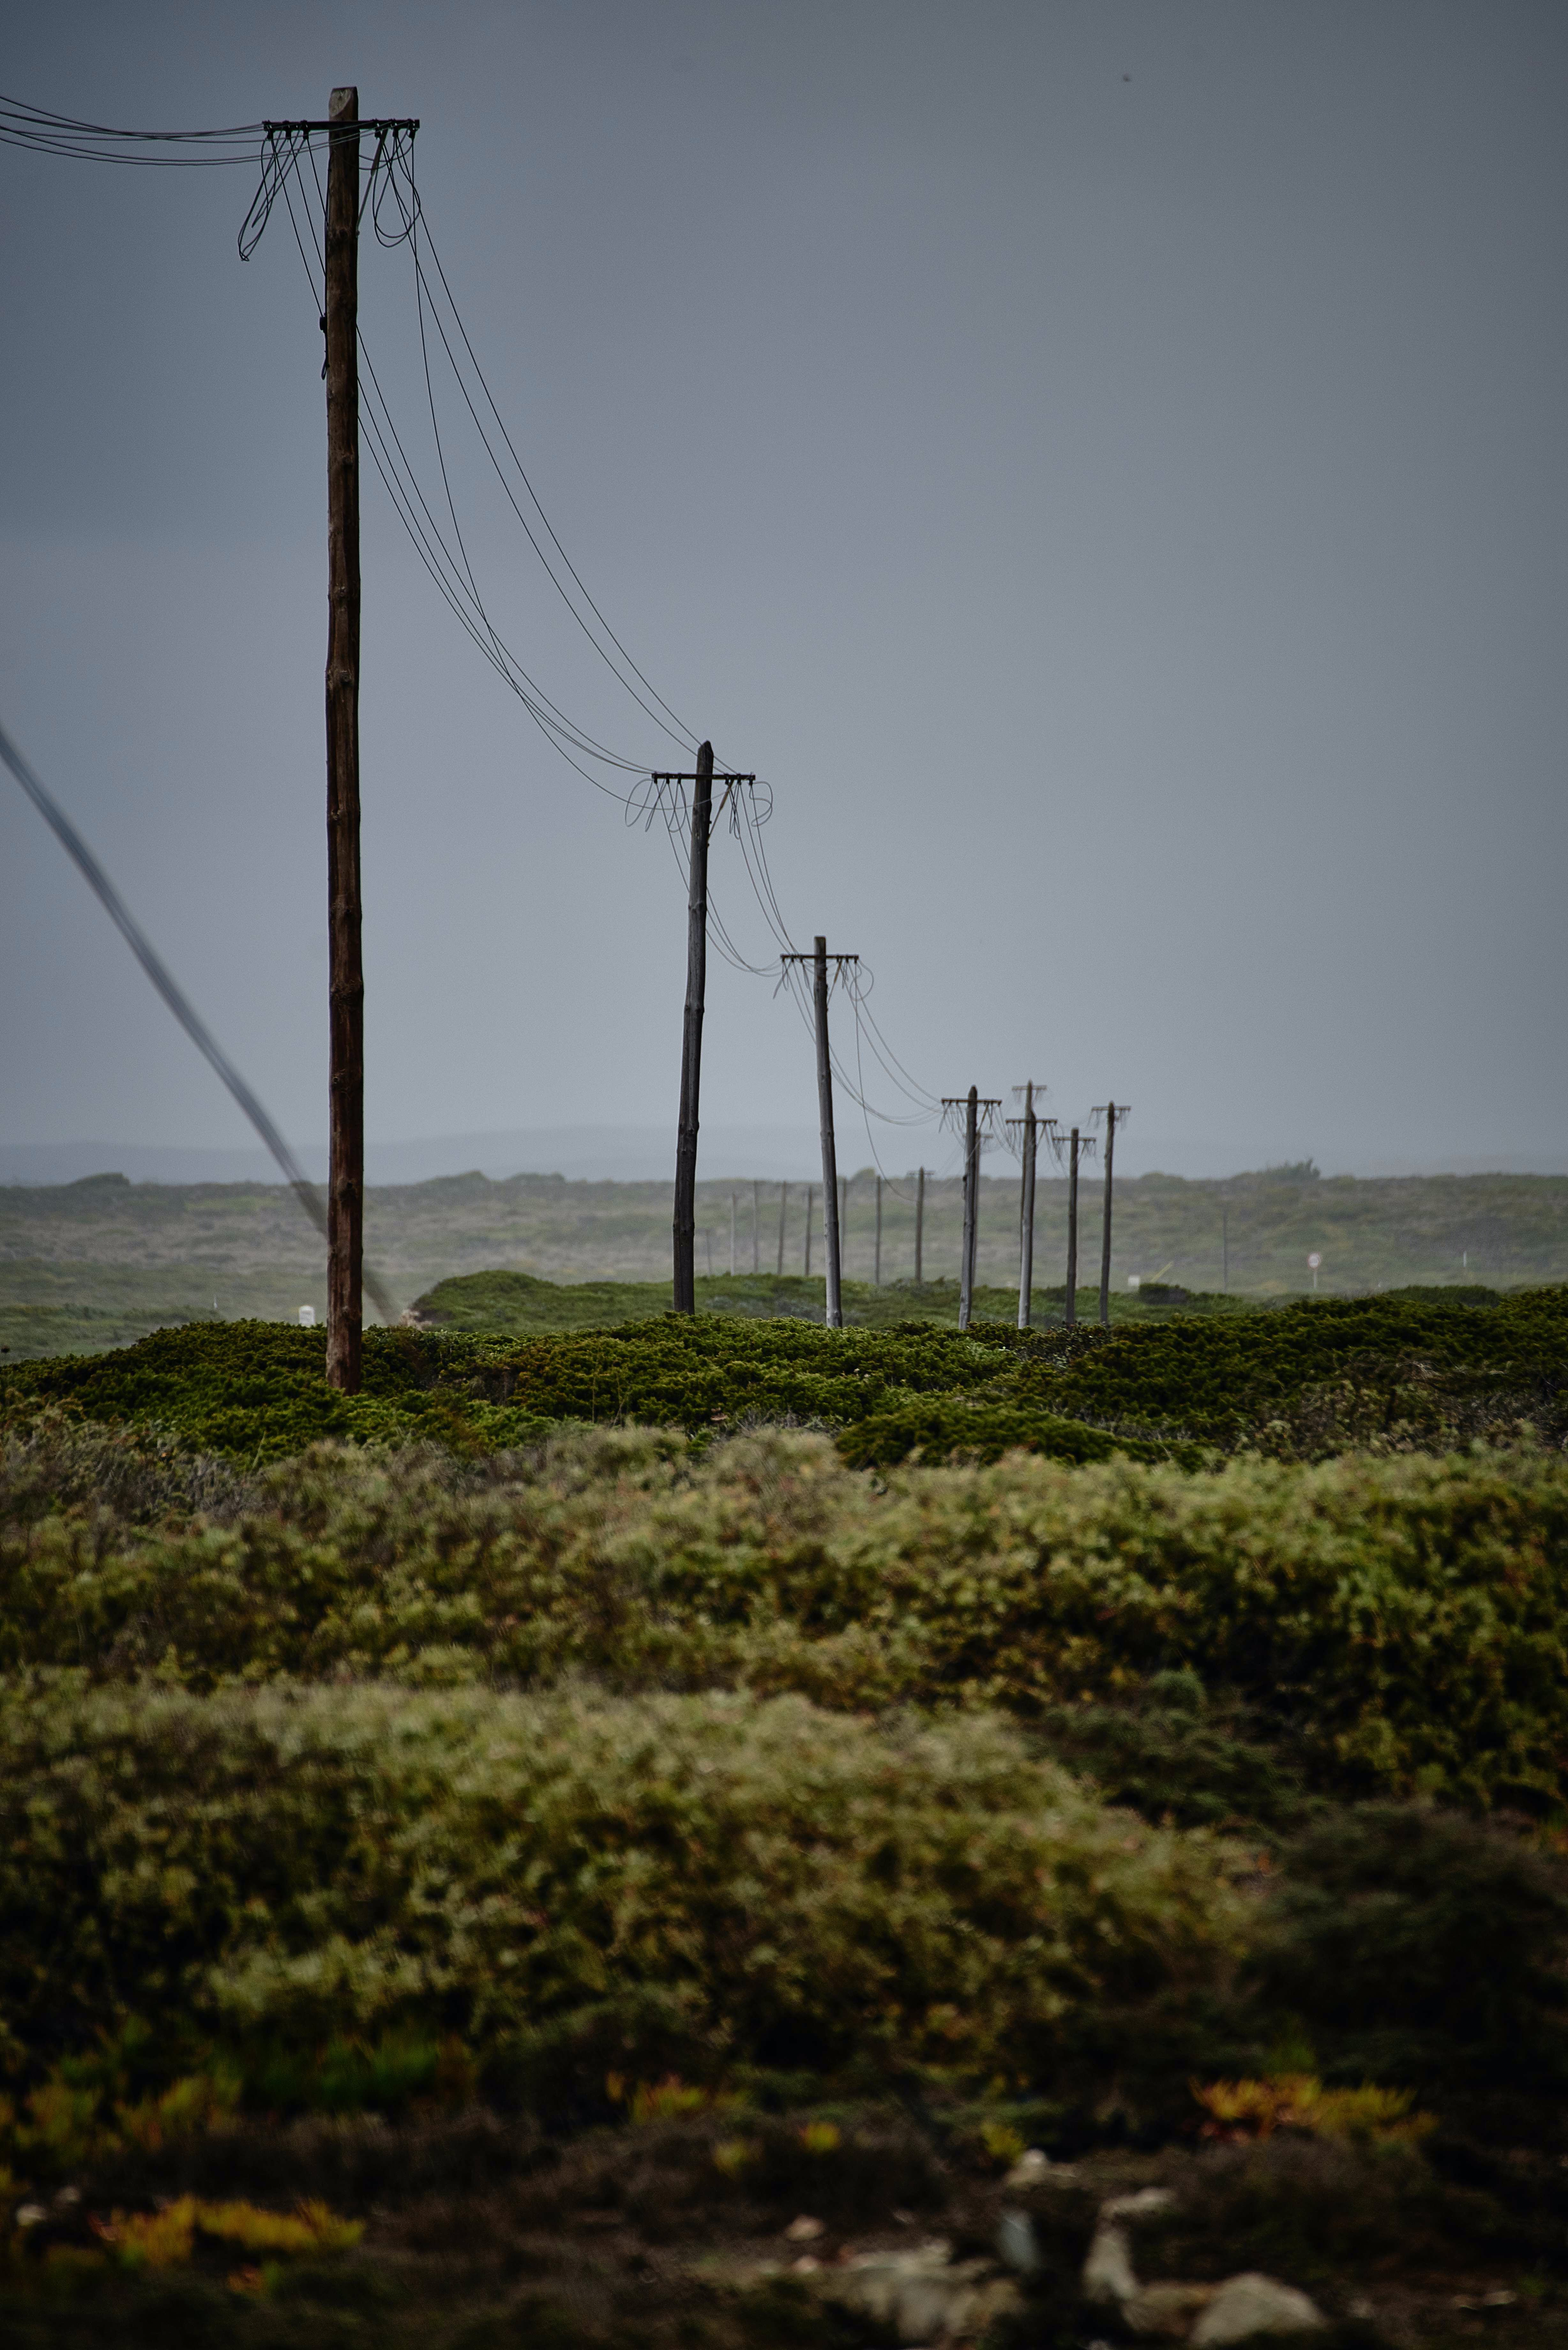 Telephone or power lines stretching out from the foreground to the distant horizon beside various bushes